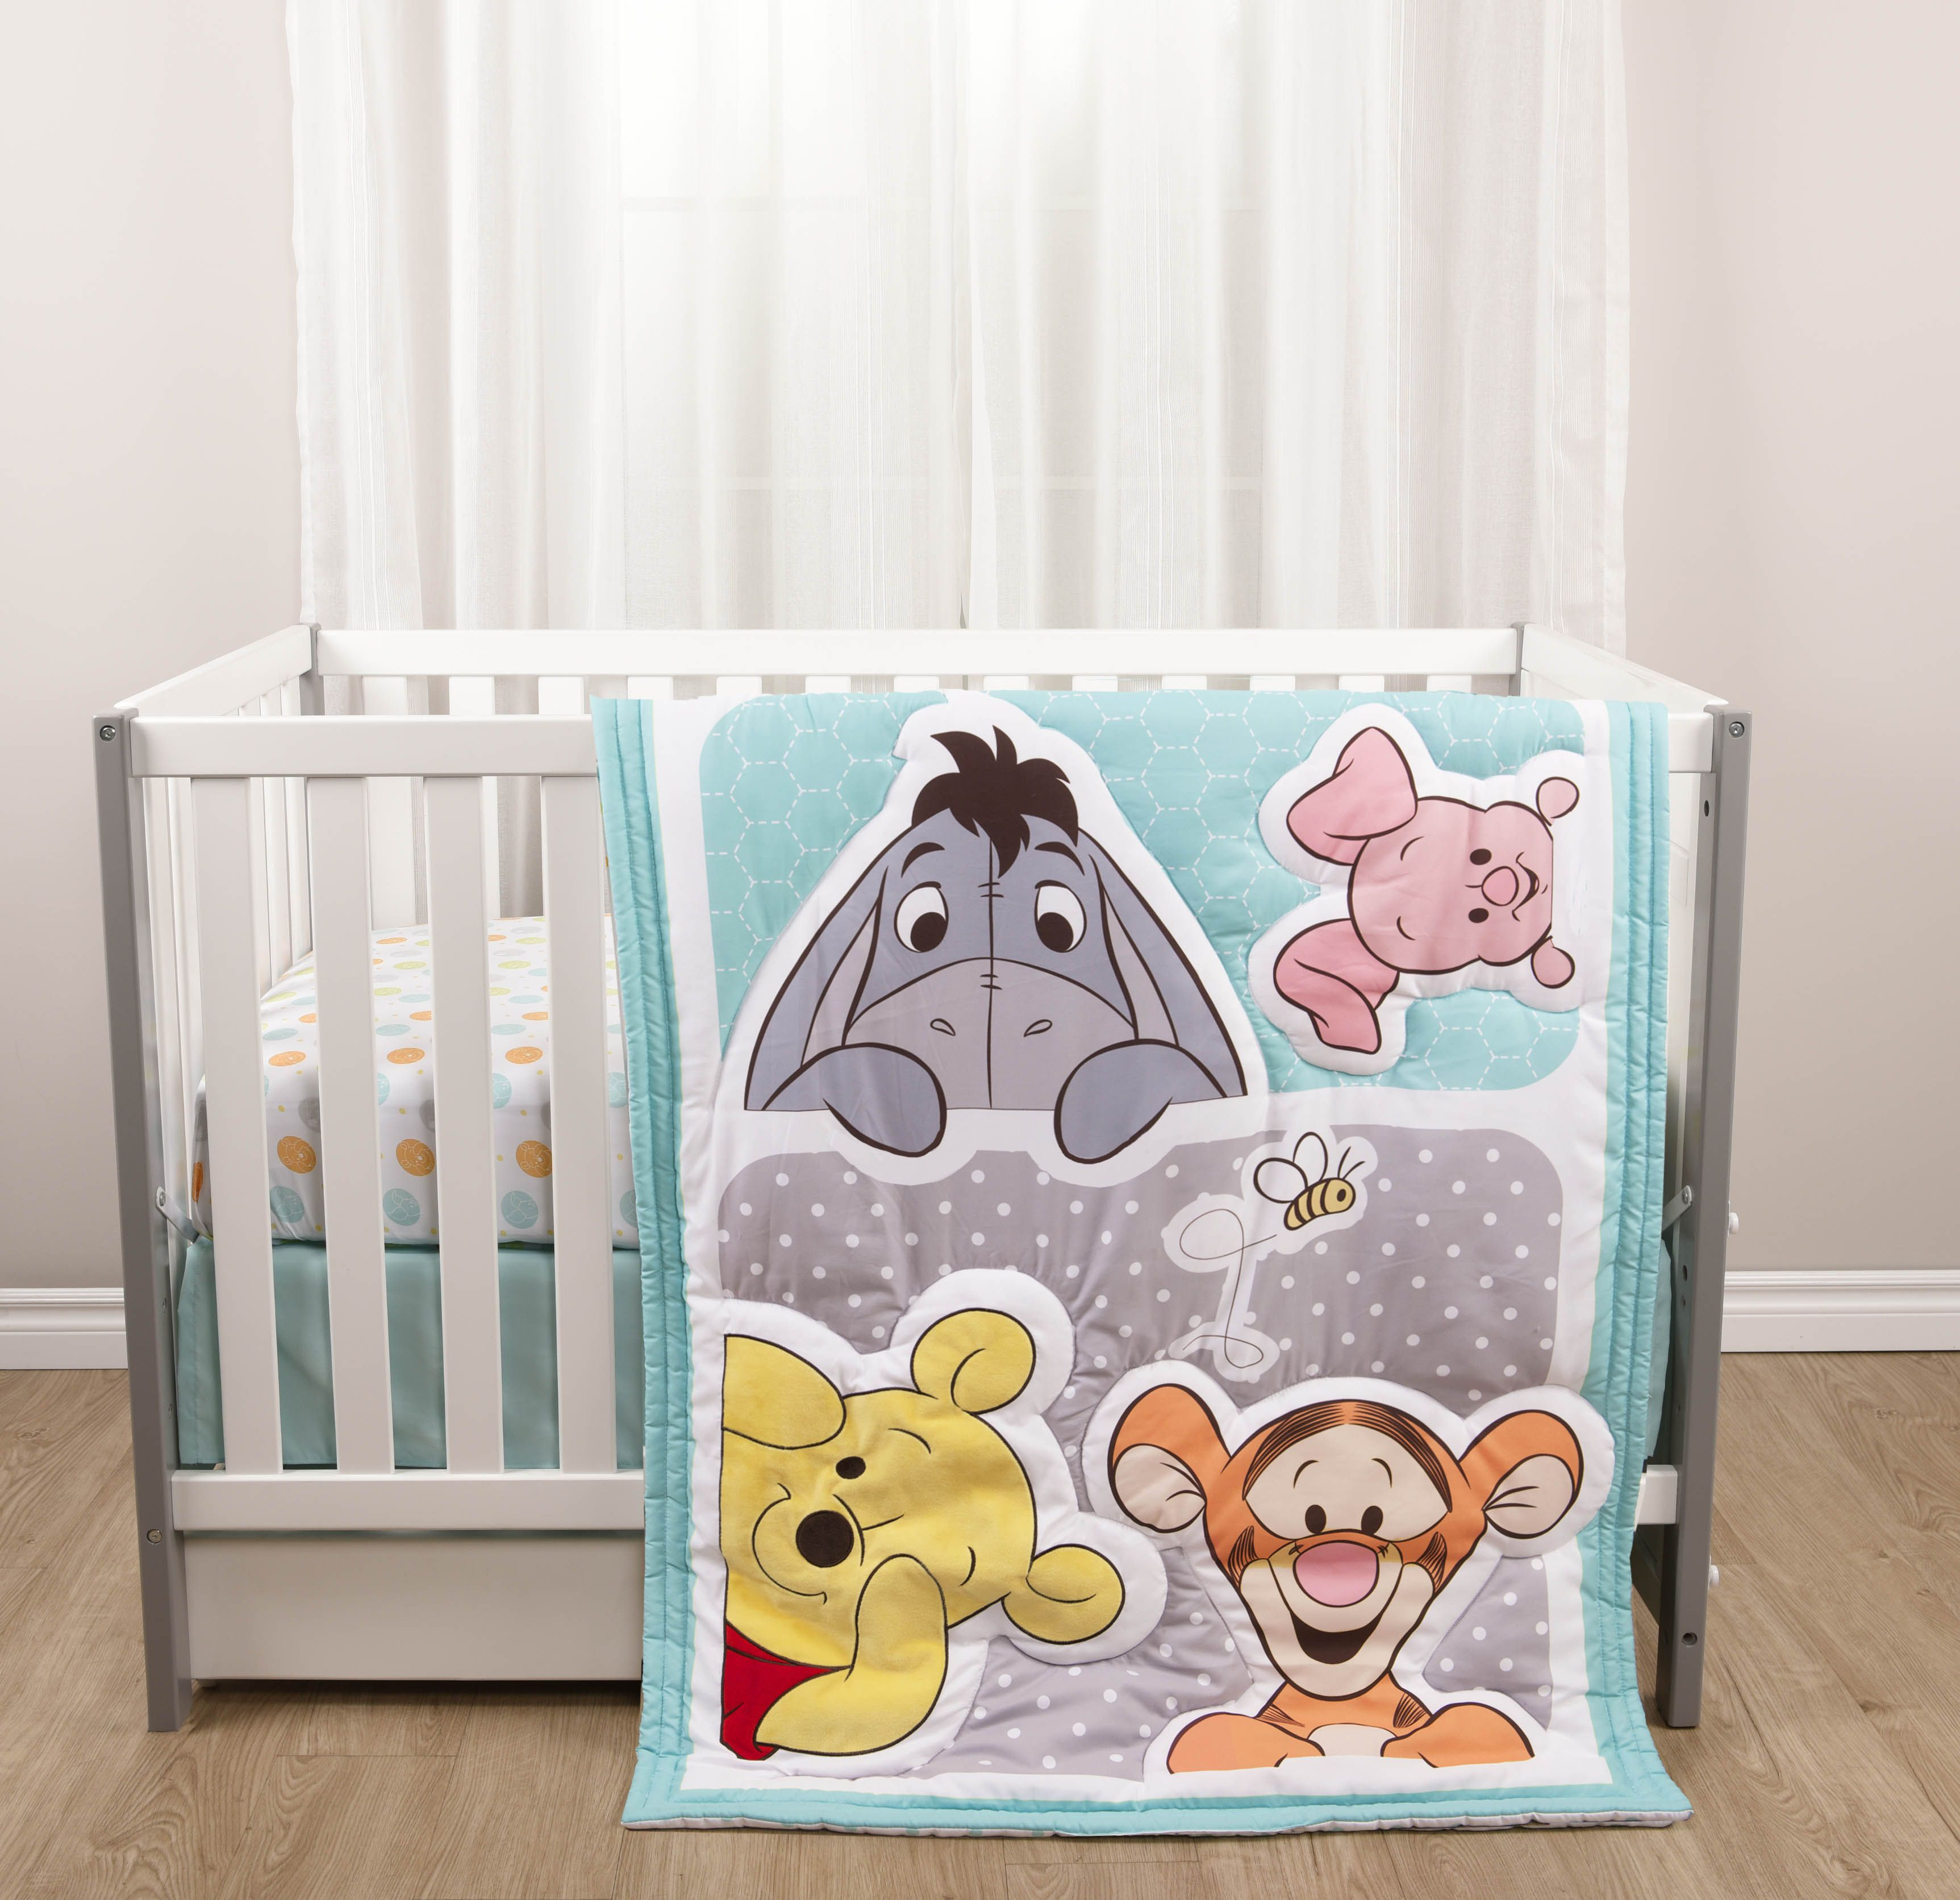 Peek a Pooh! Disney Baby bedding collection! Mix and match